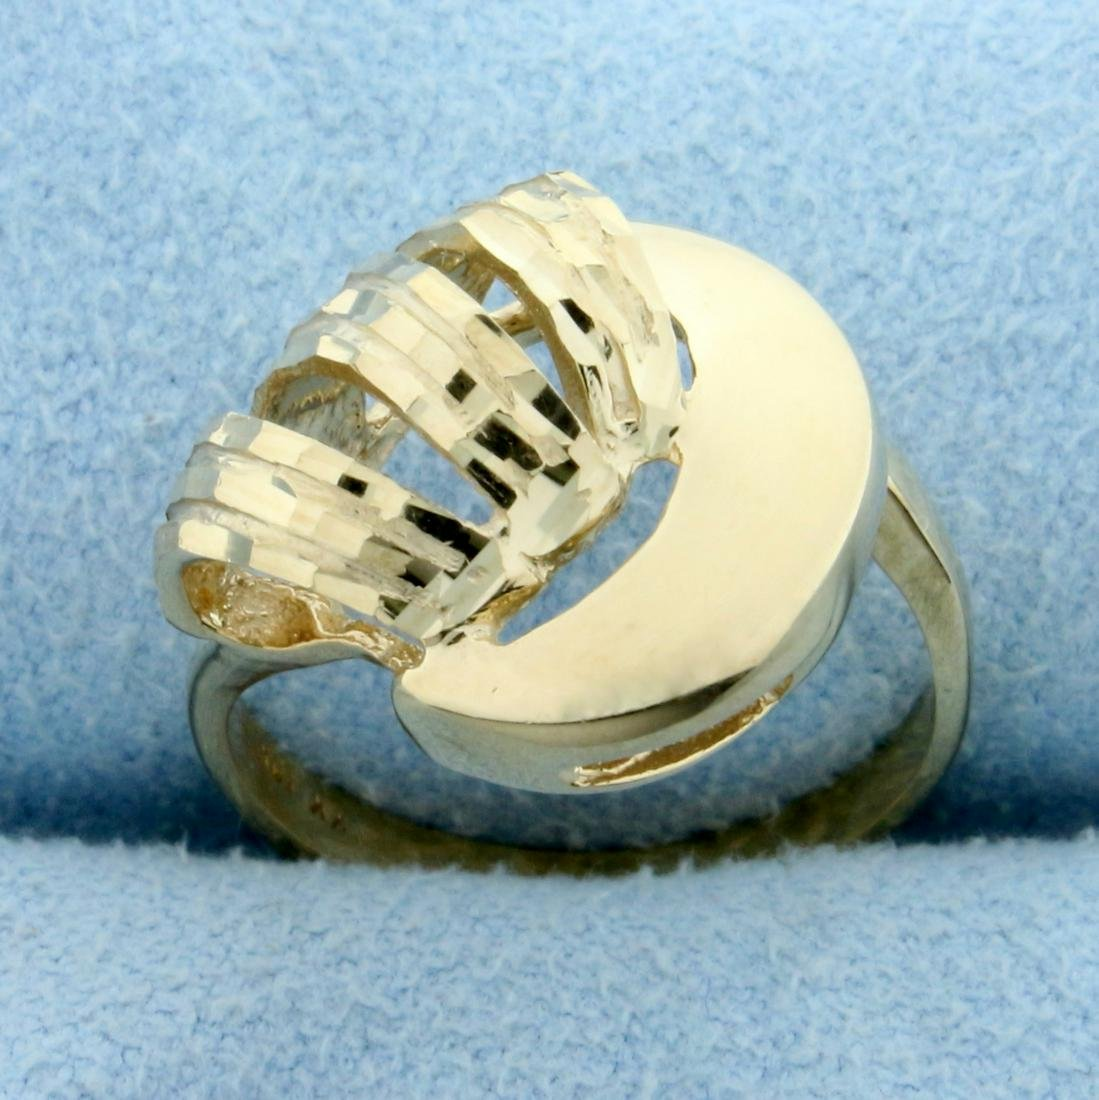 Diamond Cut Modern Abstract Design Ring in 10K Yellow